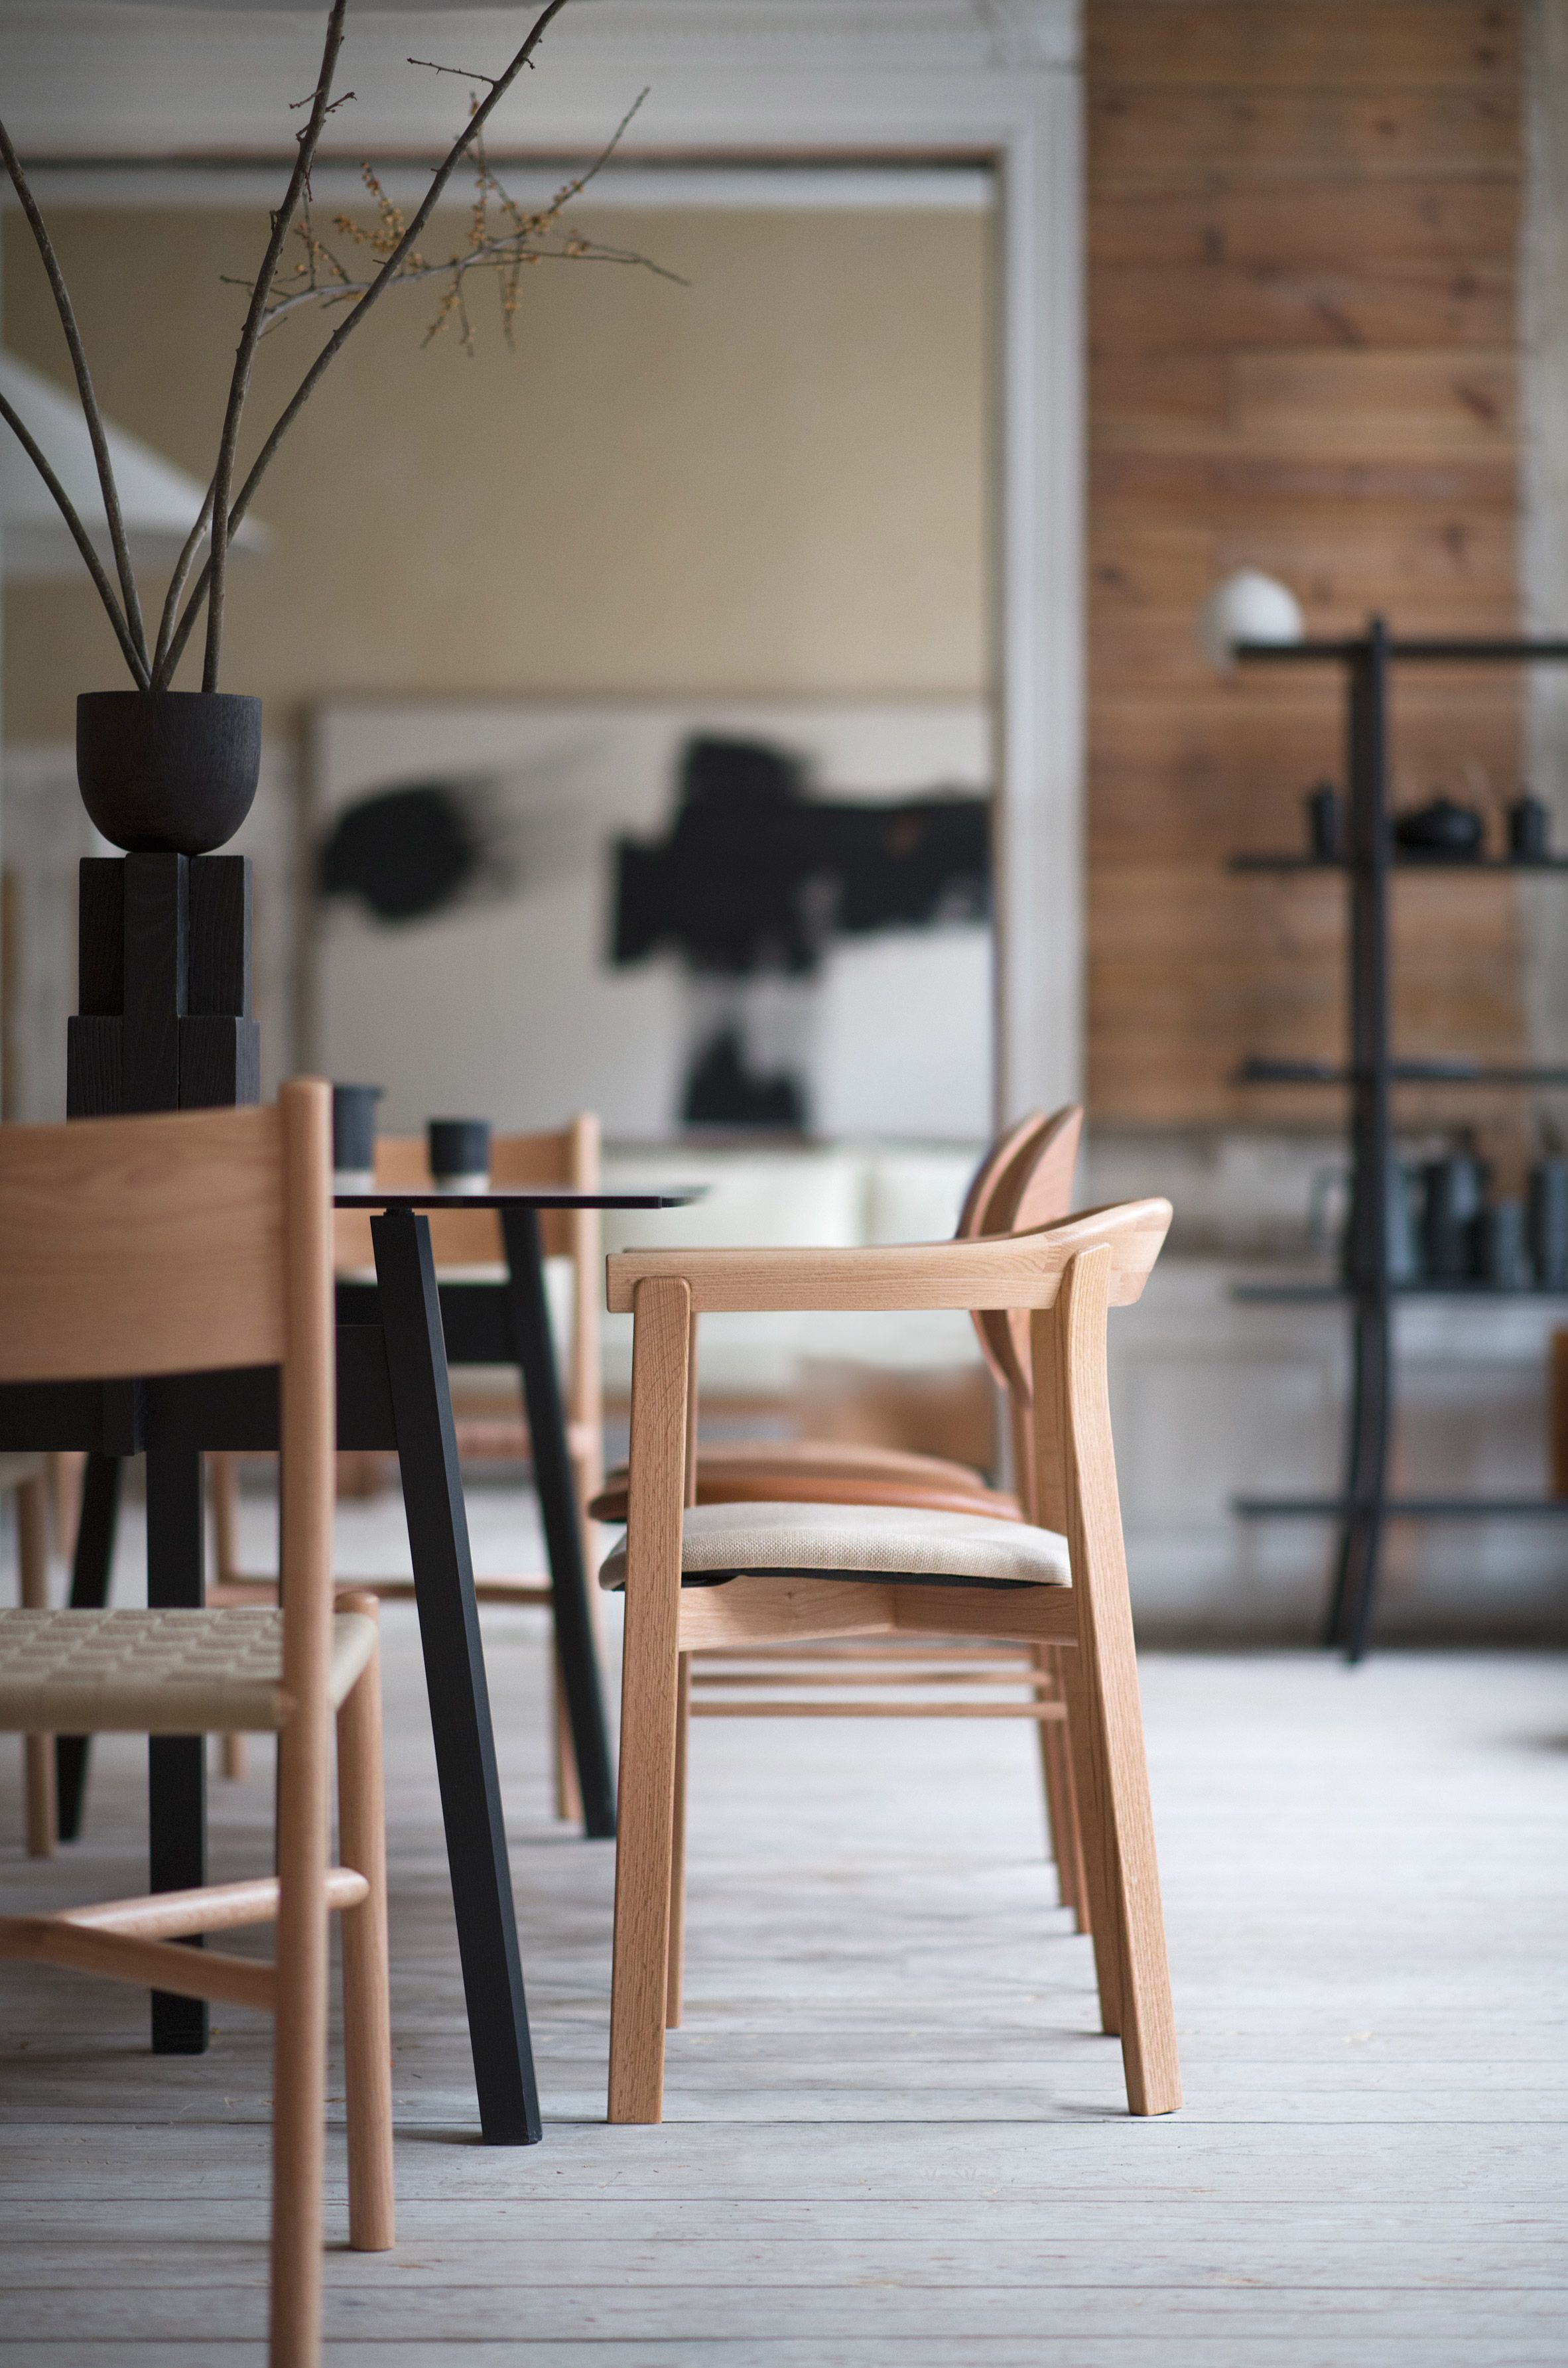 Building japanese furniture Japanese Style New Japanese Furniture Producer Ariake Showcased Its Products In Dilapidated Former Embassy Building During Stockholm Design Week 2018 Pinterest New Japanese Furniture Producer Ariake Showcased Its Products In